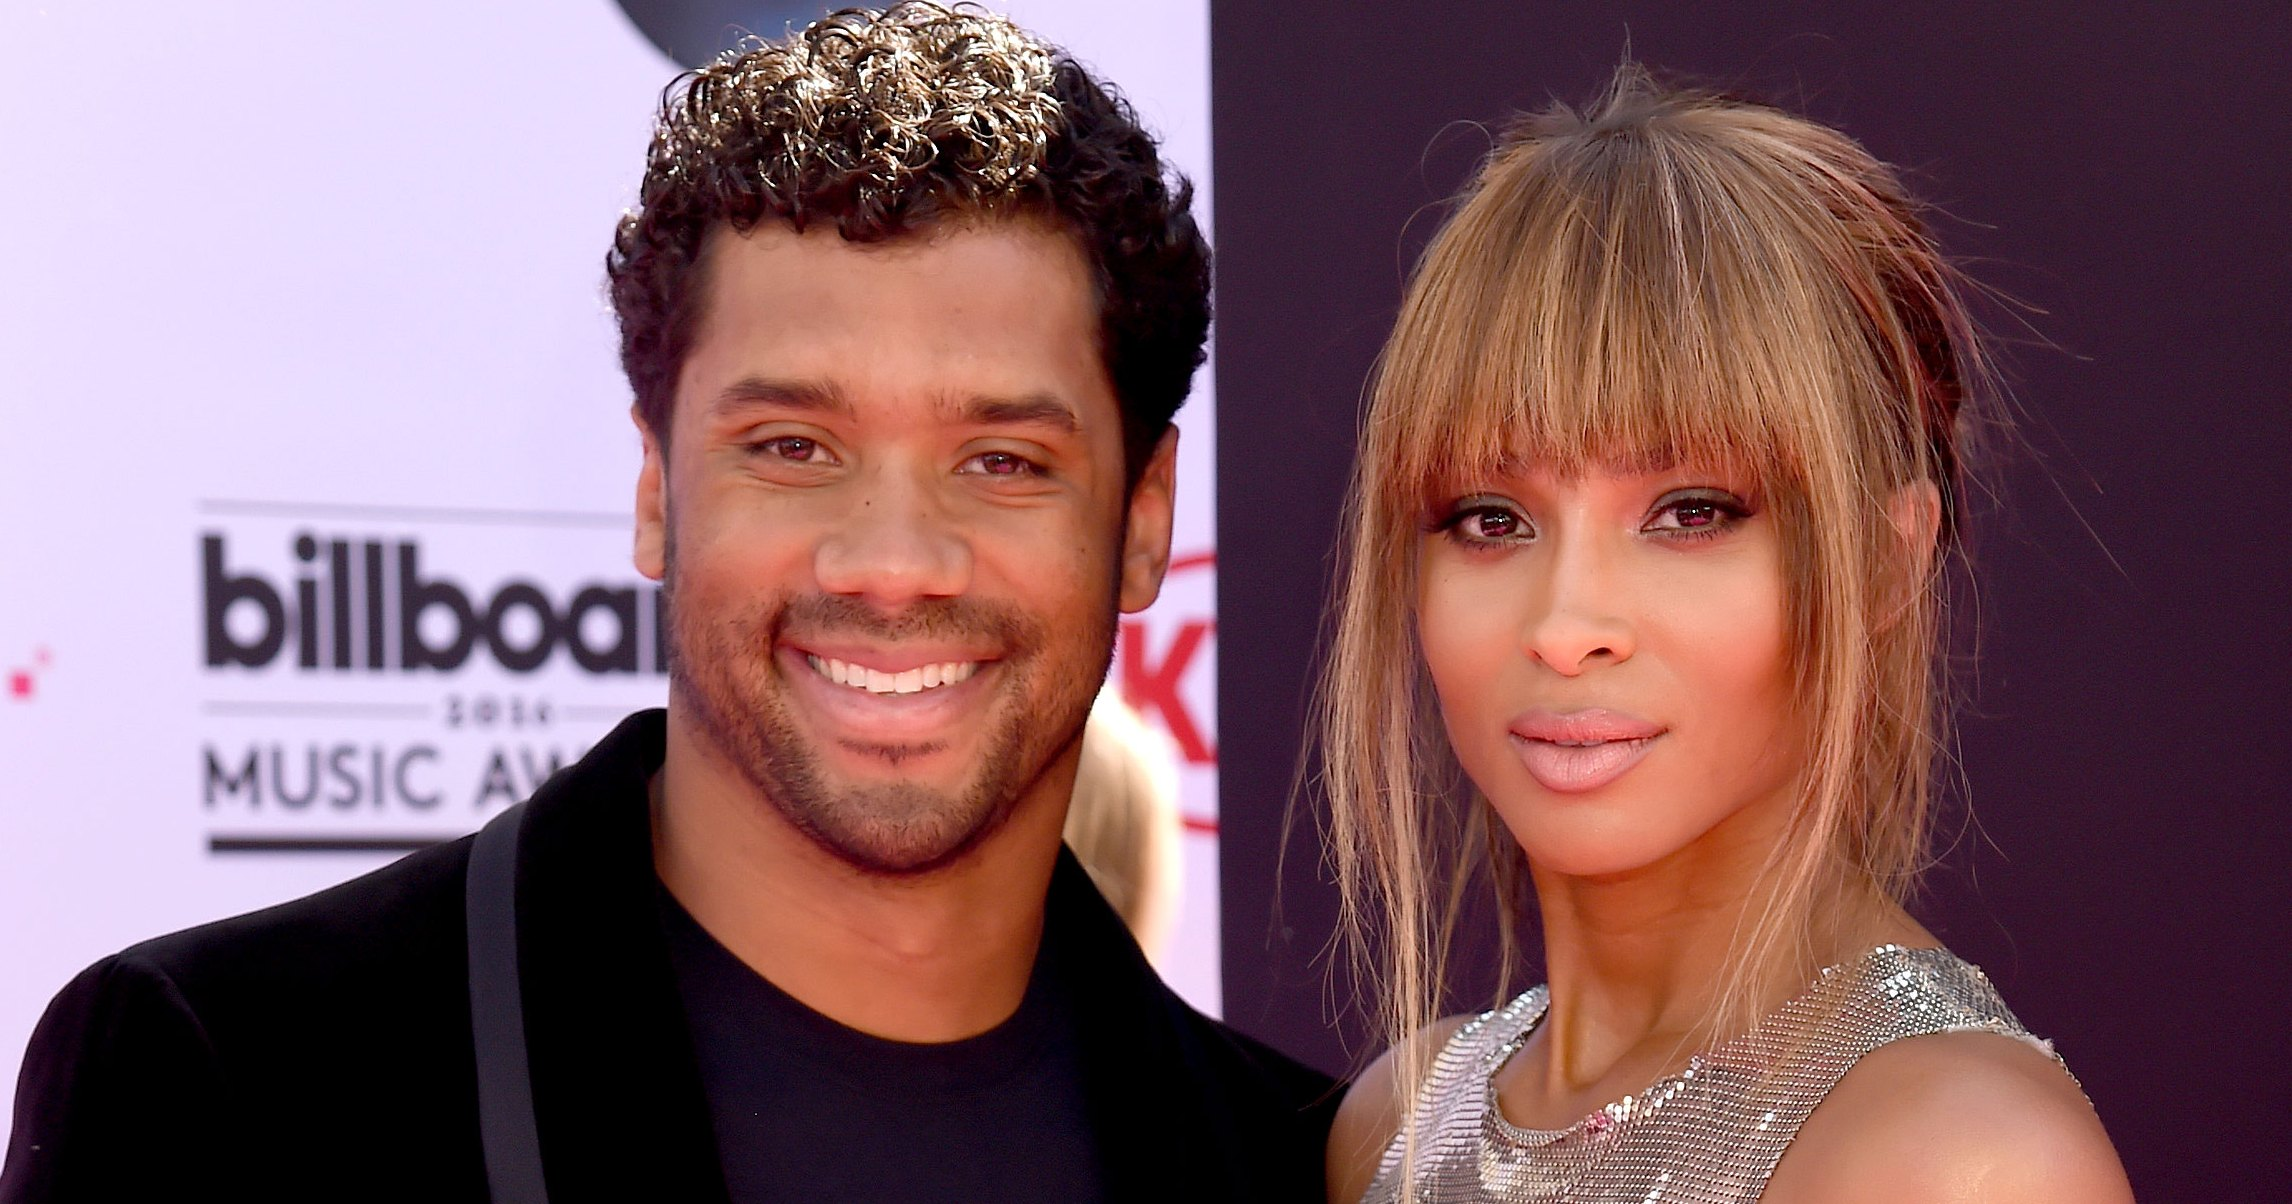 Ciara Gushes About 'Night Full of Love' With Russell Wilson